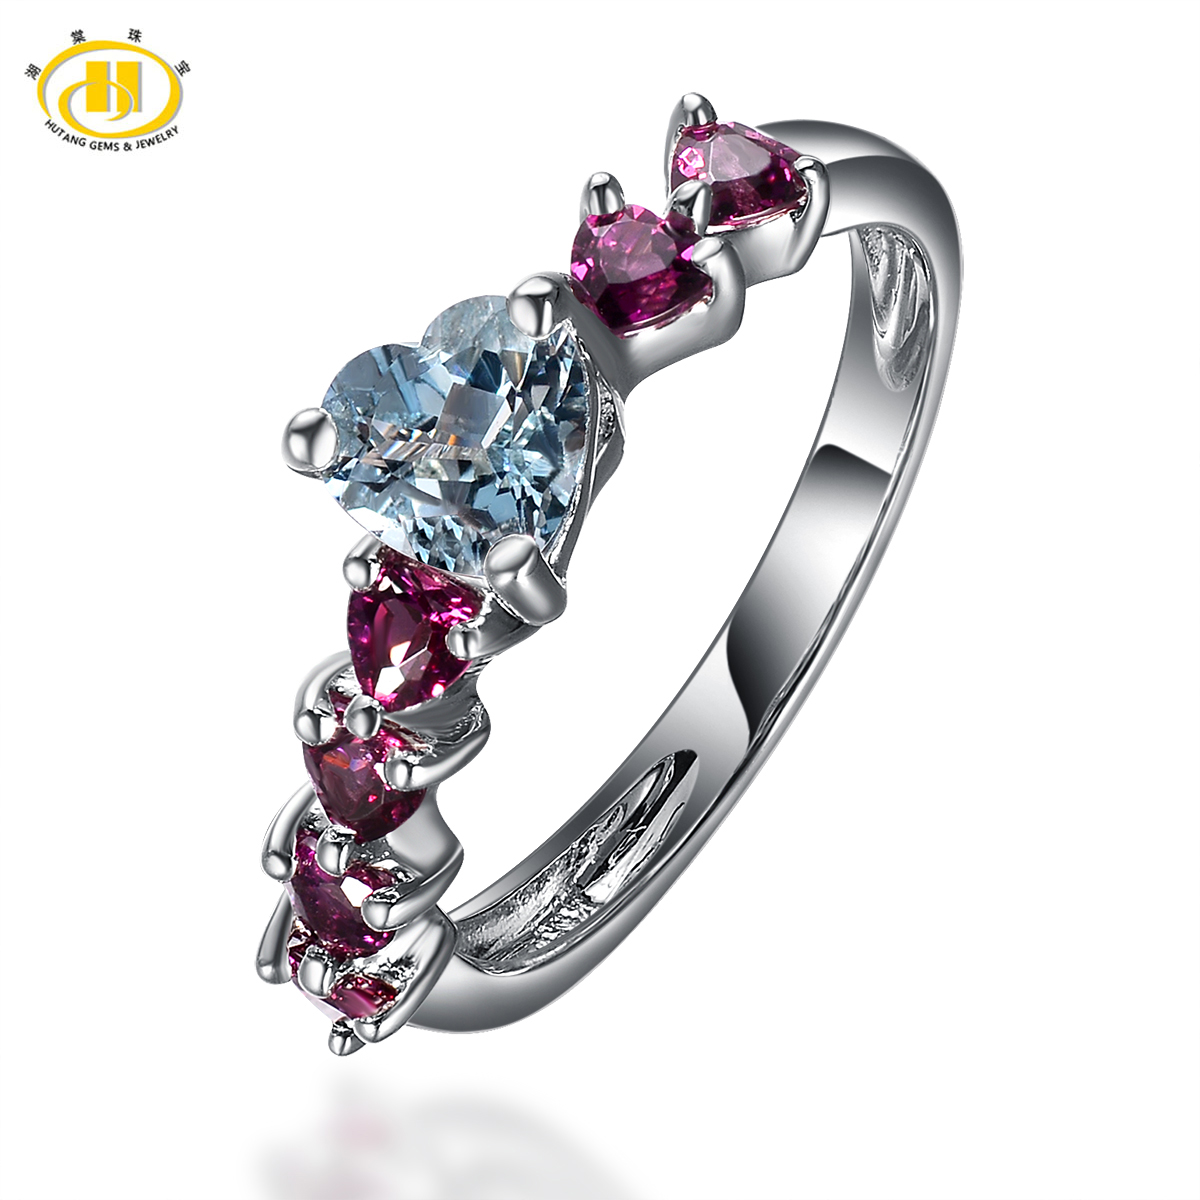 Hutang Womens Natural Aquamarine and Rhodolite Garnet GemstoneRings 925 Sterling Silver Heart Ring Wedding Fine Jewelry Gift